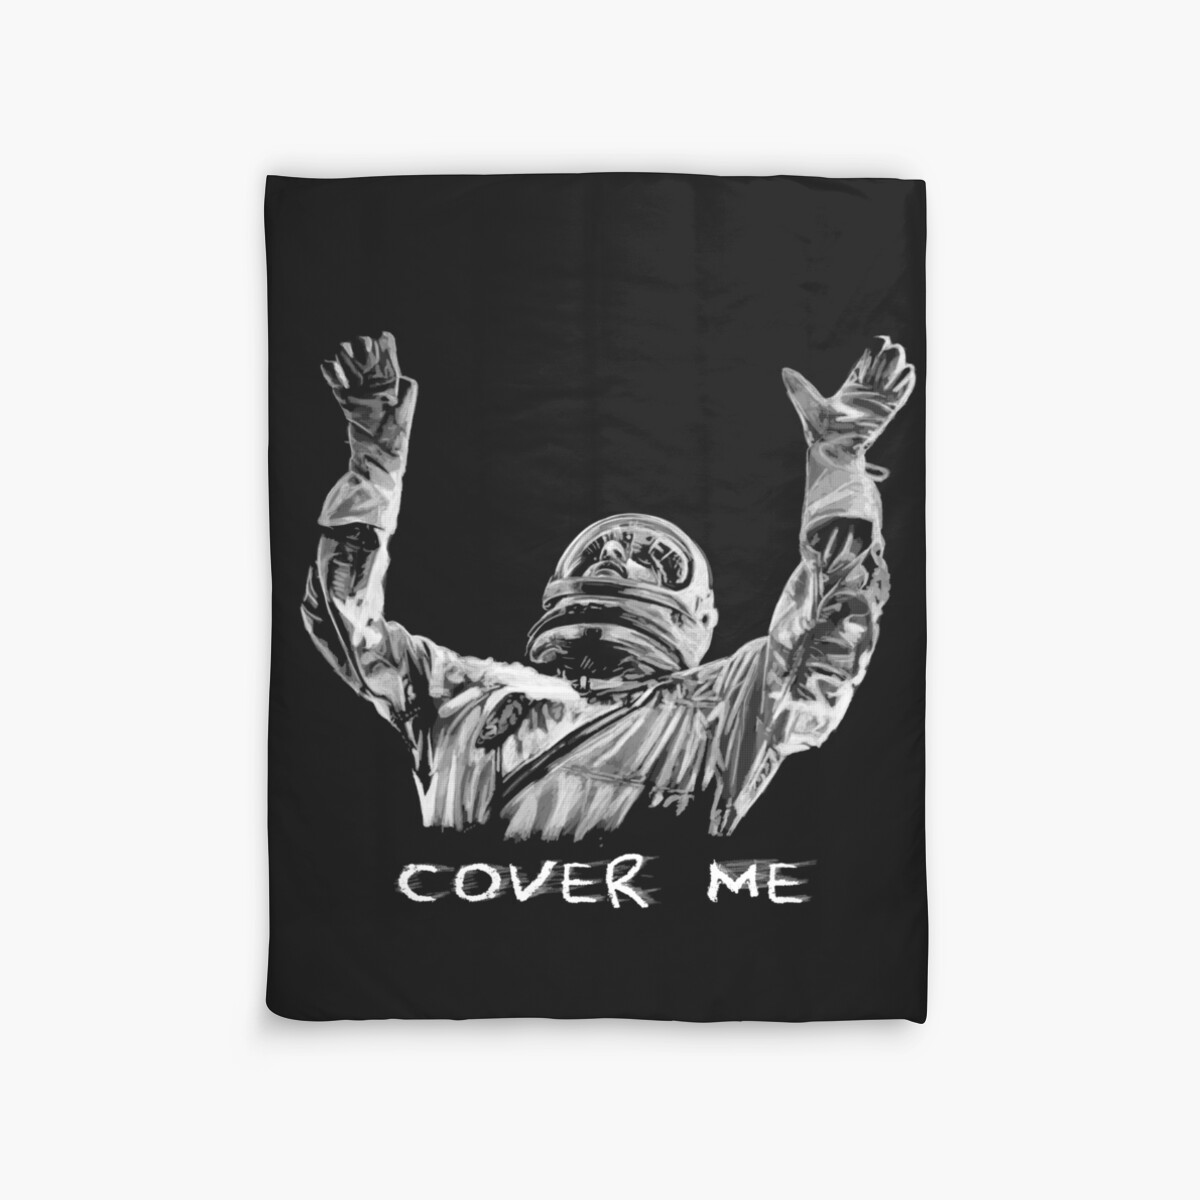 depeche mode dave gahan cover me txt duvet covers by luc lambert redbubble. Black Bedroom Furniture Sets. Home Design Ideas